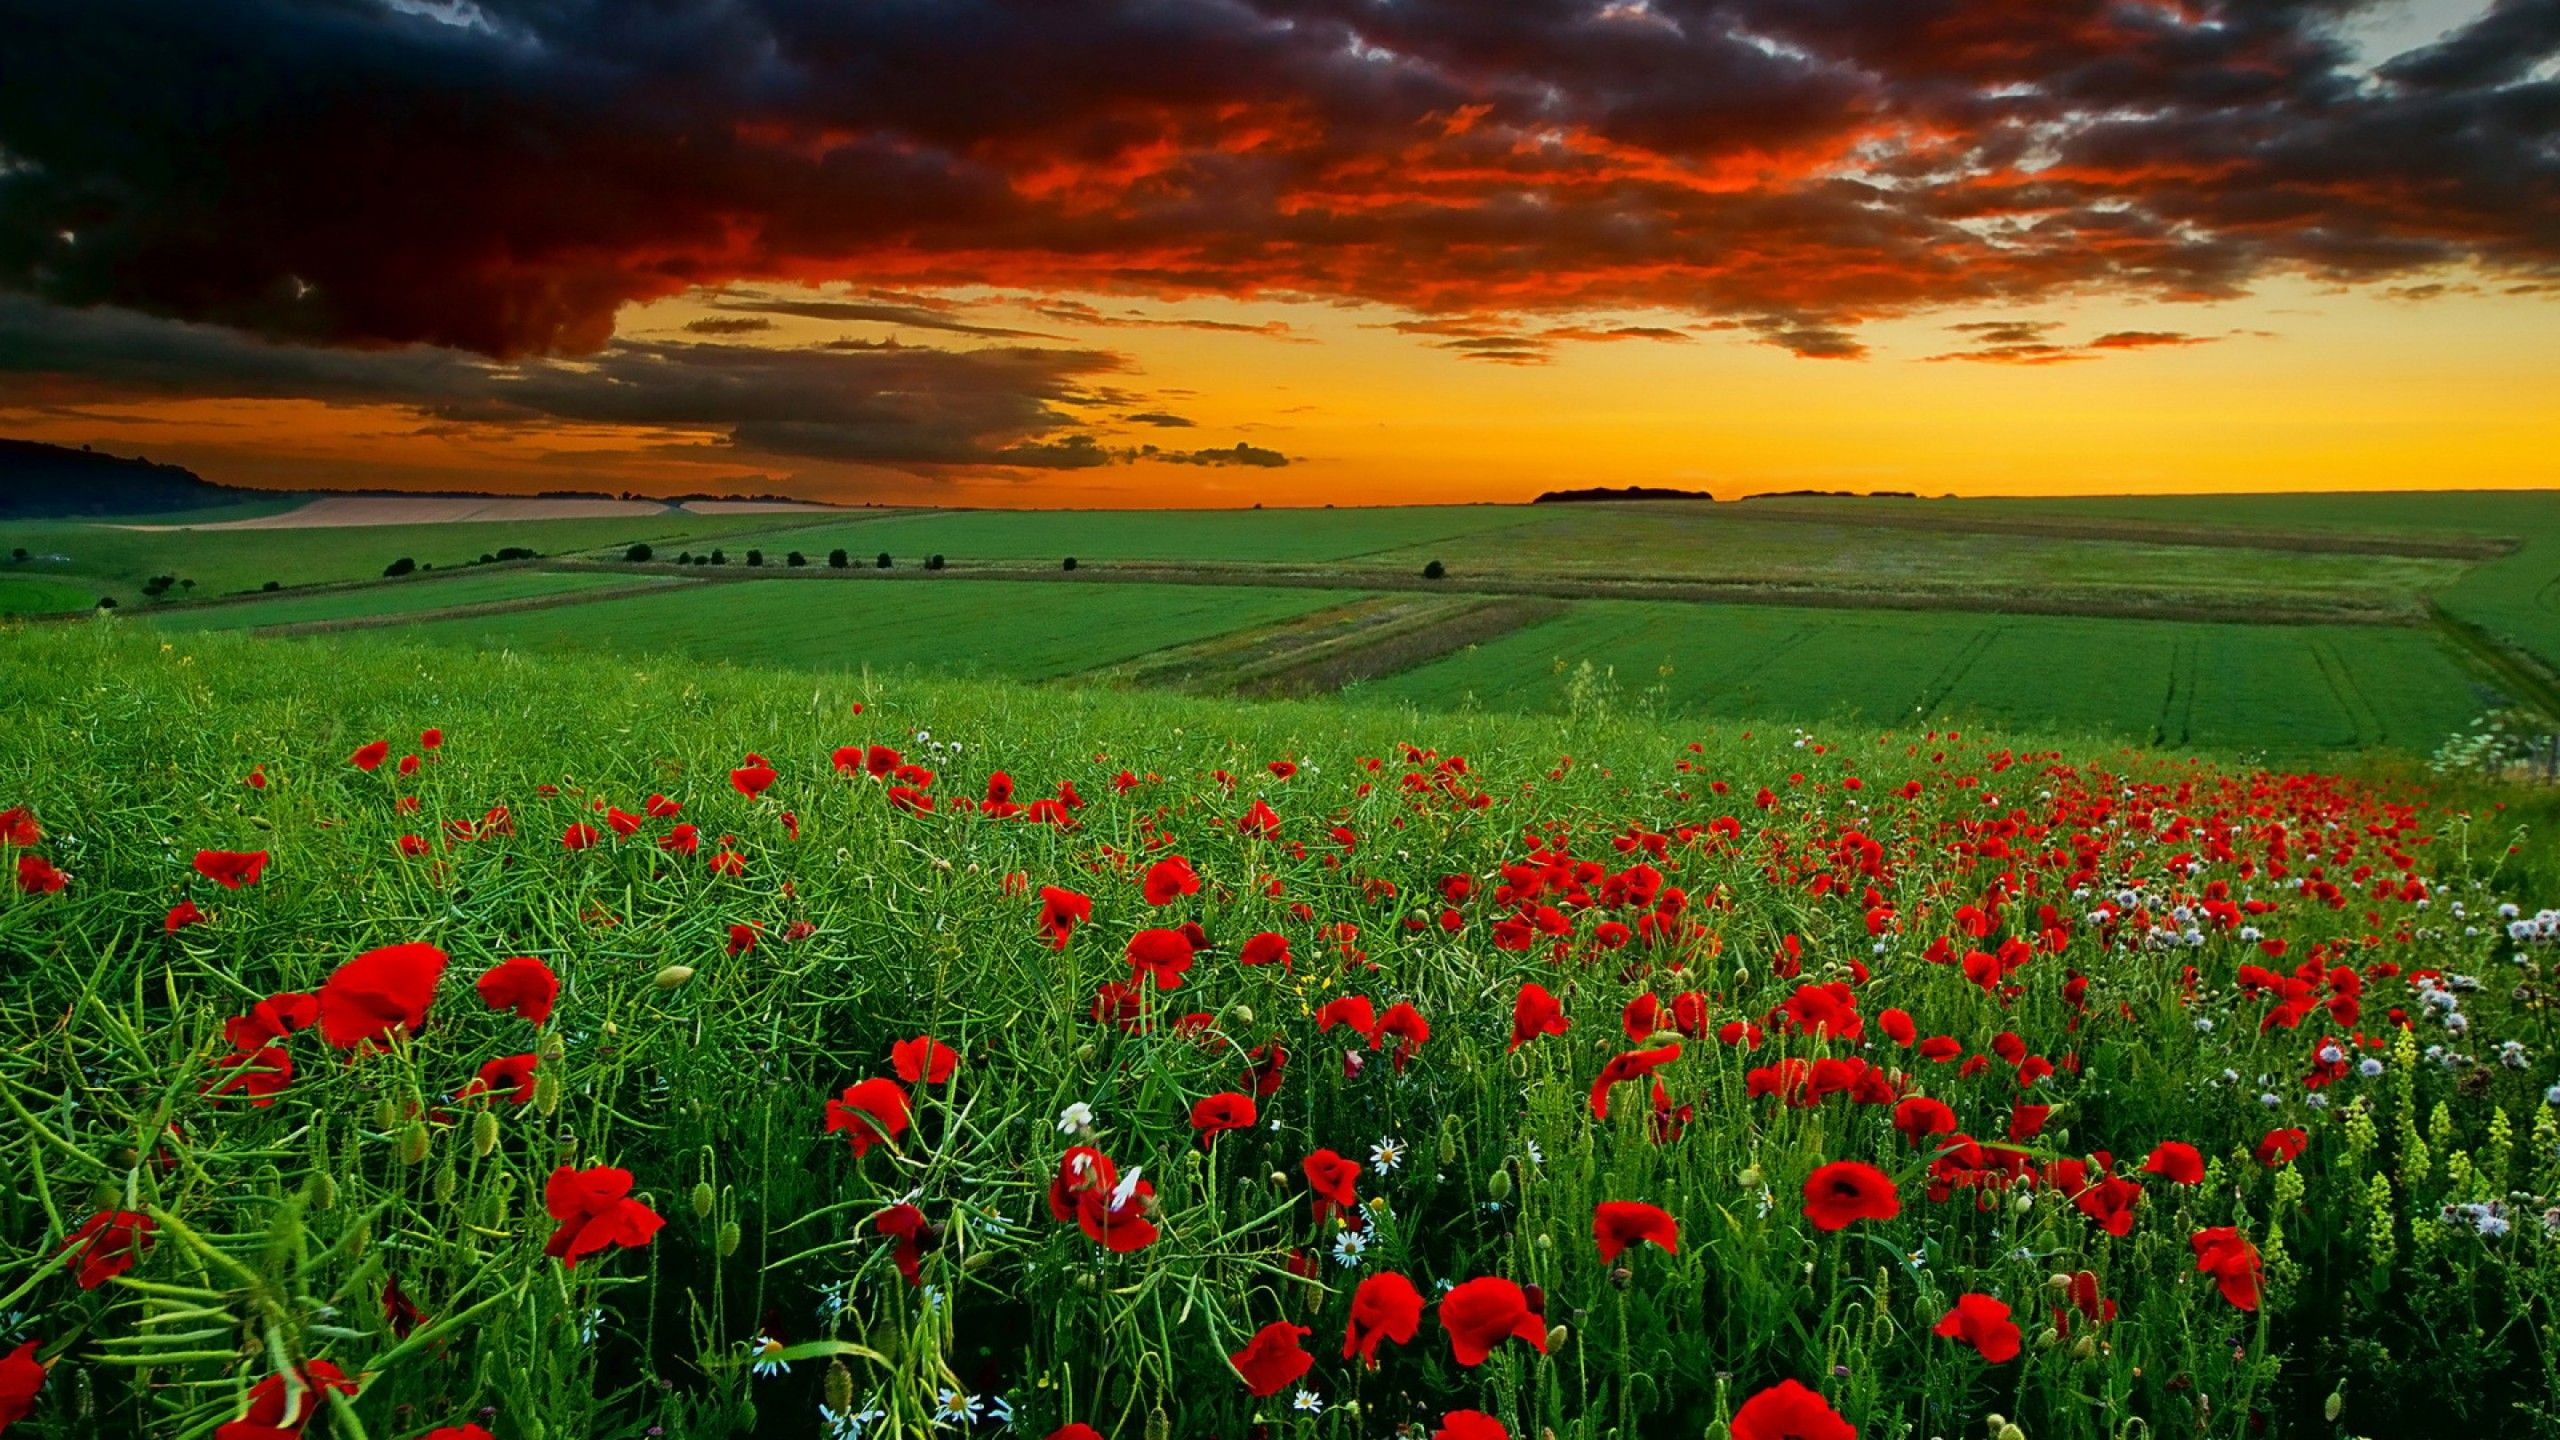 Field Daisies 64 Wallpapers – Live Wallpapers